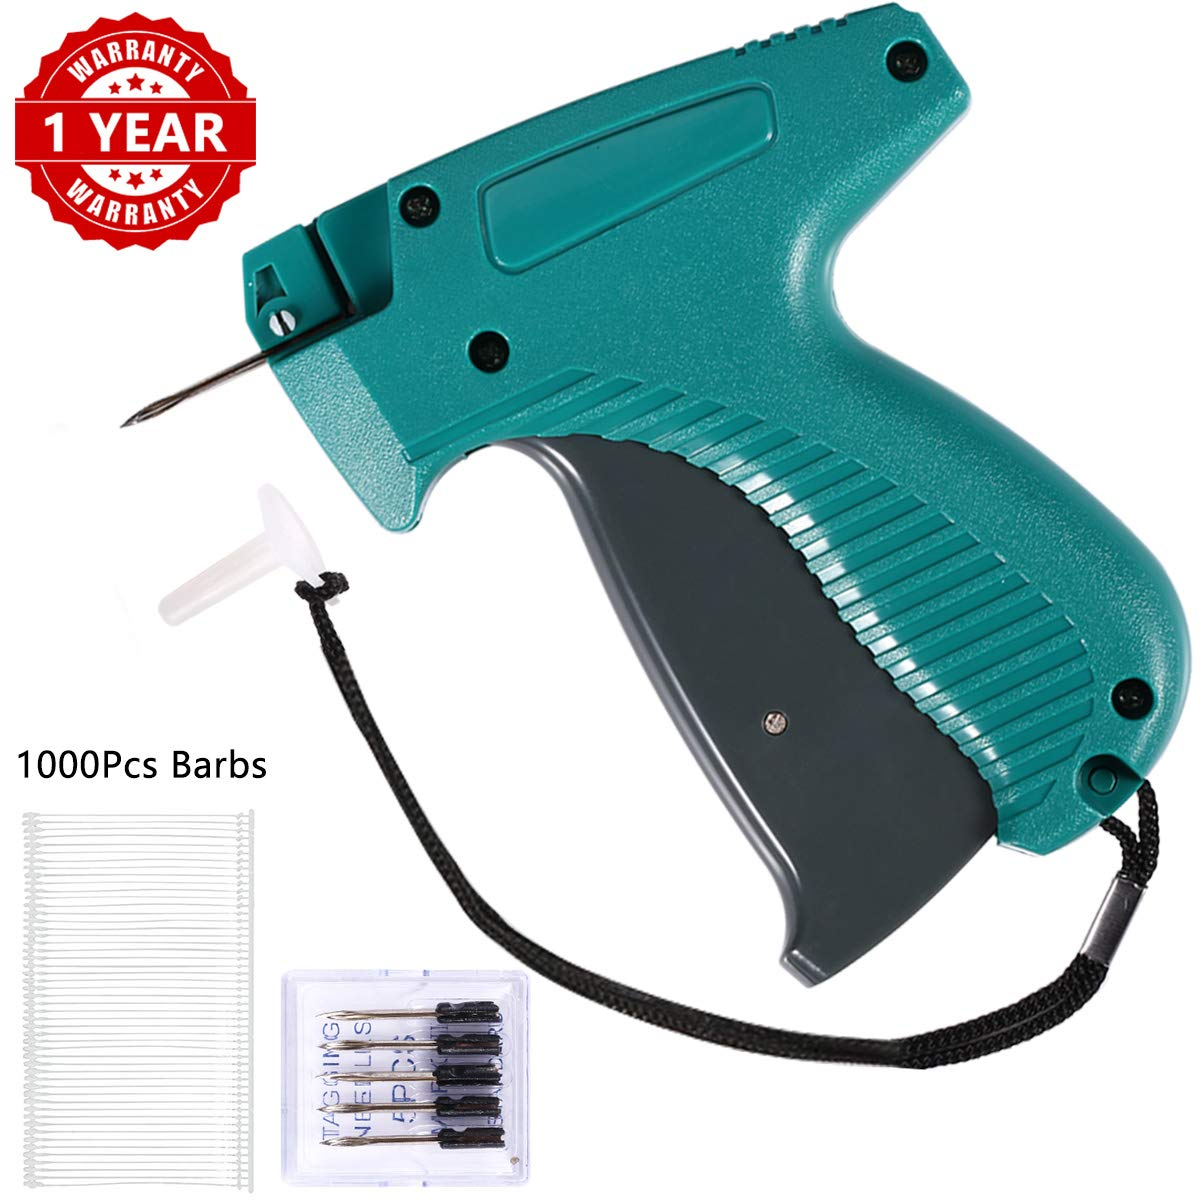 Price Tag Gun, Standard Attacher Tagging Gun for Clothing Clothes Labeler with 6 Needles & 1000pcs Barbs Fasteners & Organizer Bag by Acehome